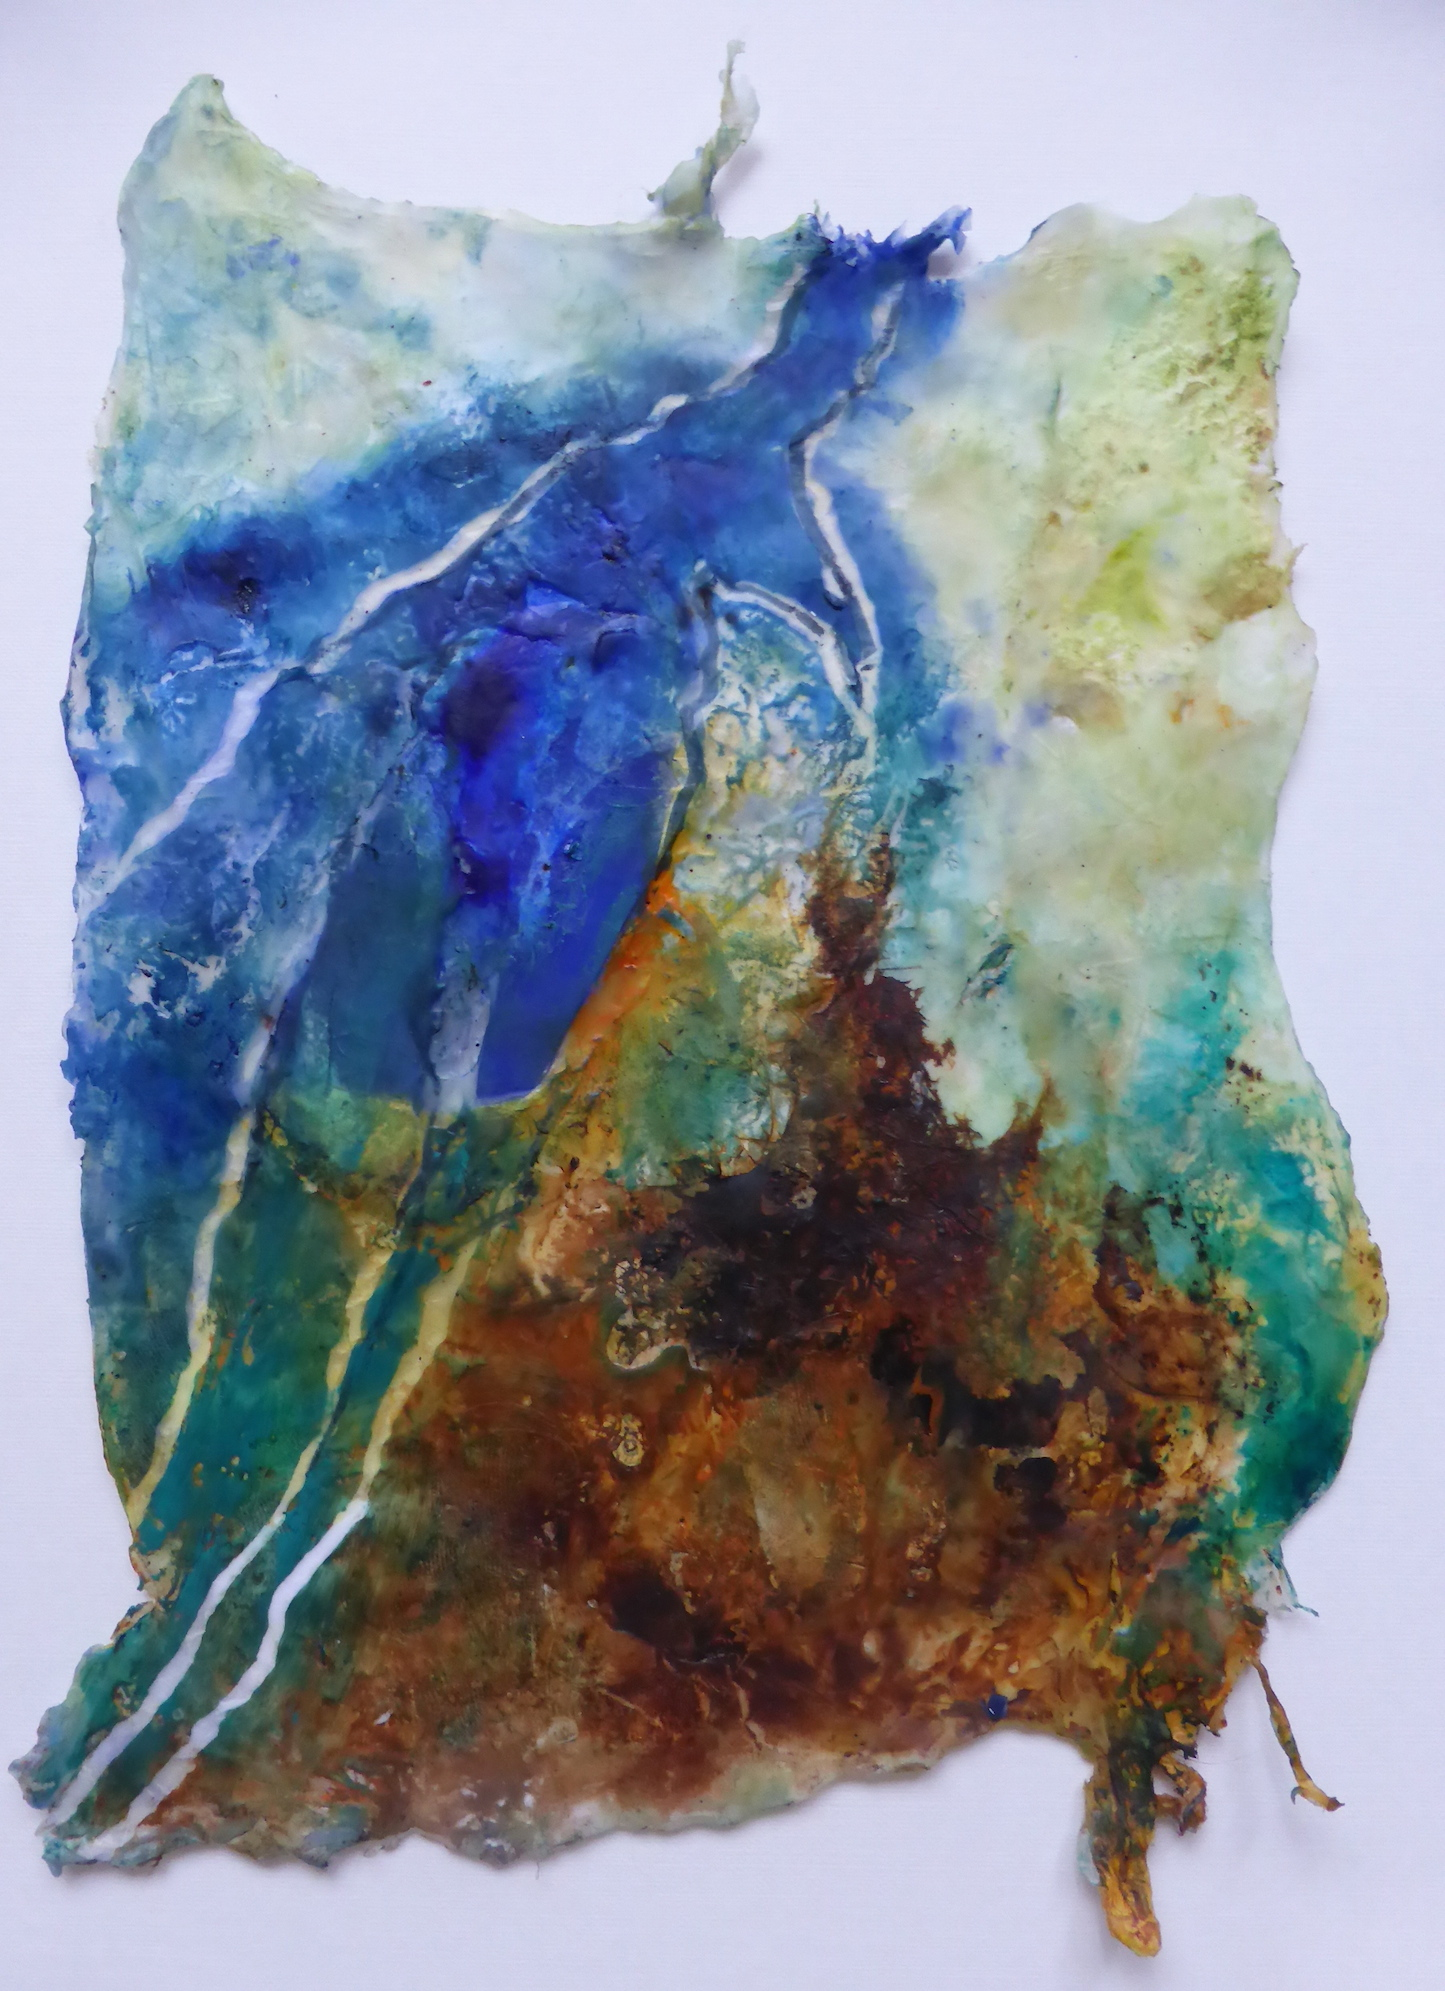 Mixed media met glas | 20x30